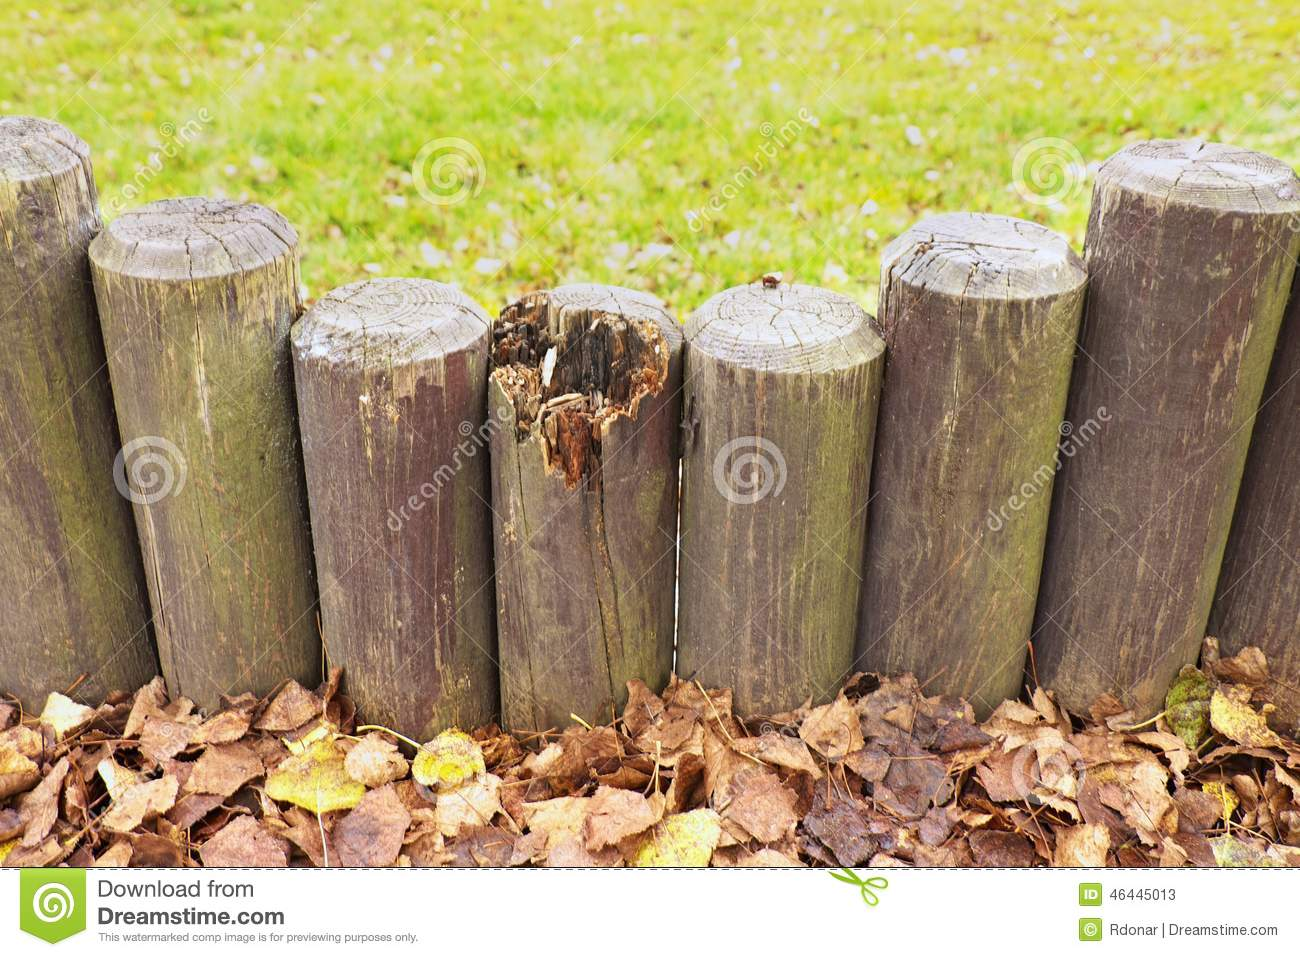 Broken fence, old wooden stockade, palisade, grass in background. Autumn leaves.